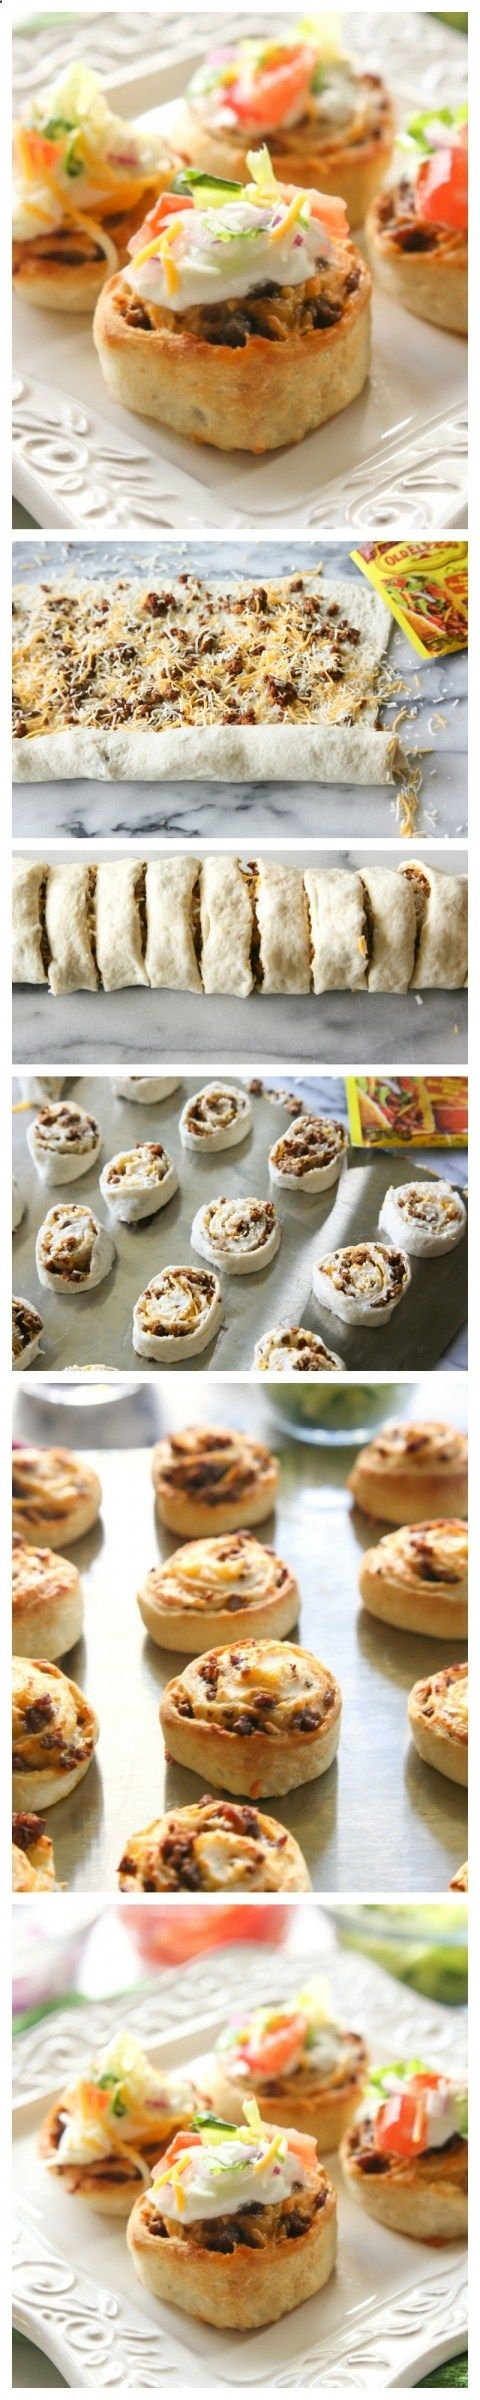 Taco Pizza Rolls - taco meat and cheese rolled up in pizza dough and topped with your favorite taco toppings. the-girl-who-ate-...